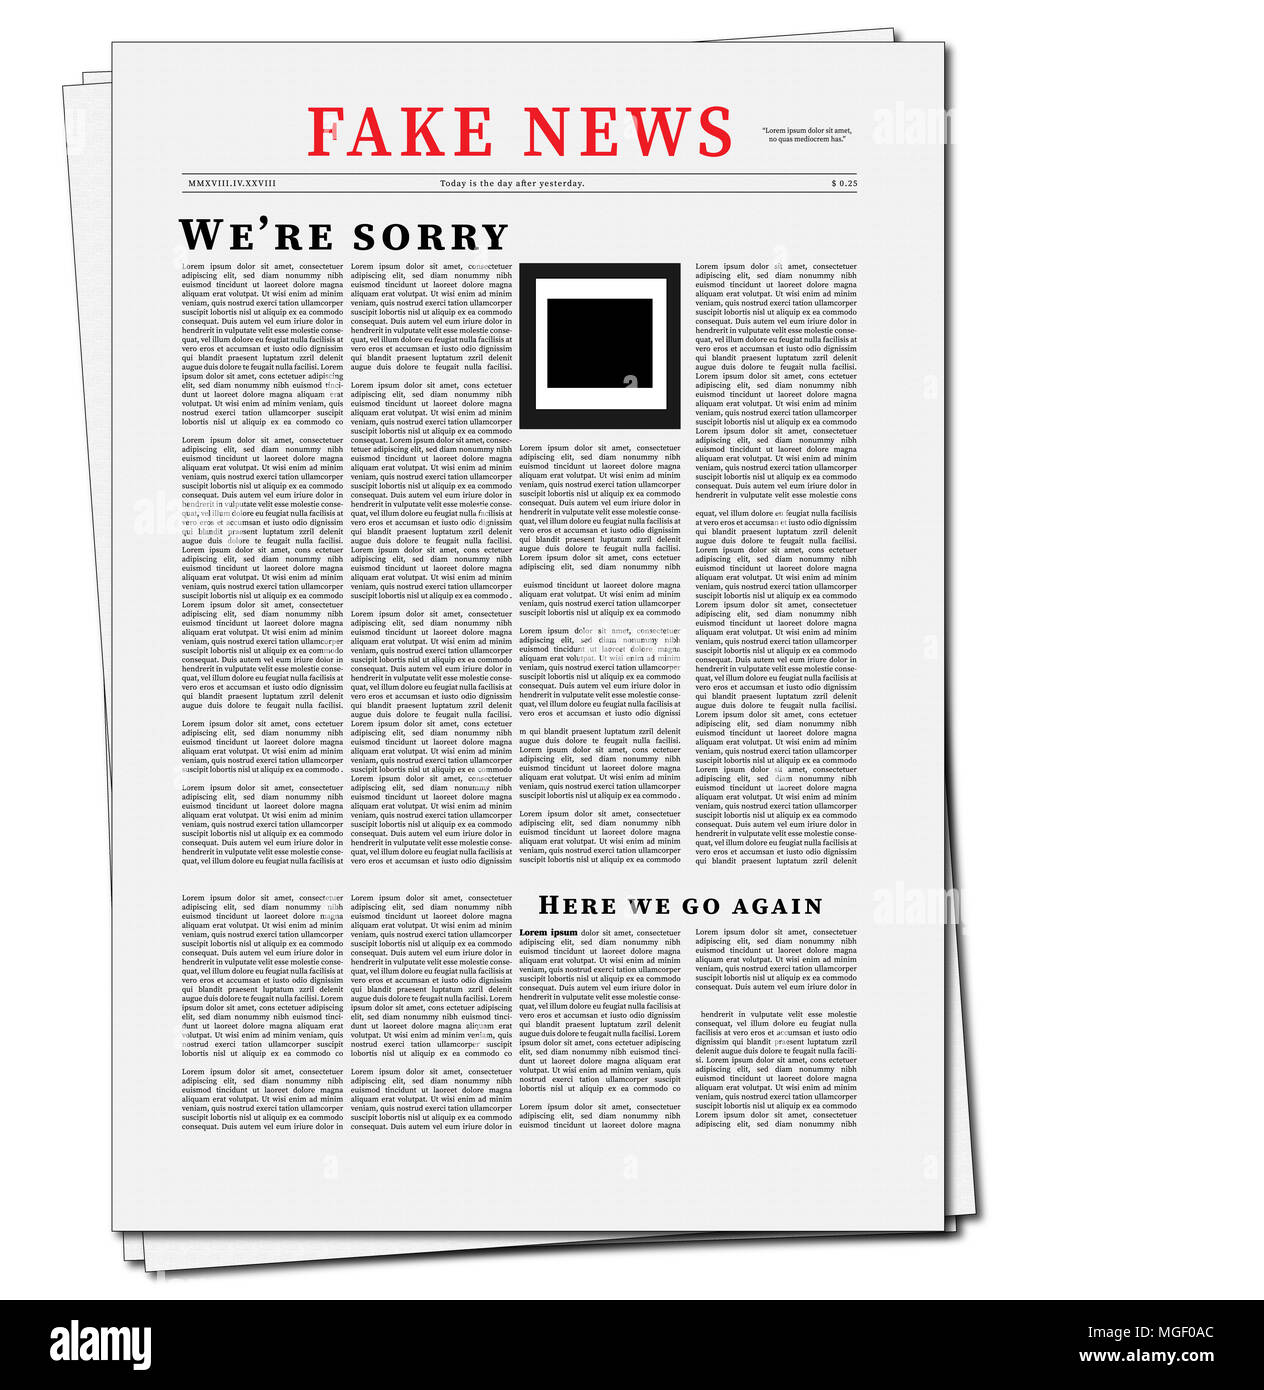 Fake News Newspaper Illustration. Flat Design of Newspaper with Fake News Headline and fake picture. - Stock Image